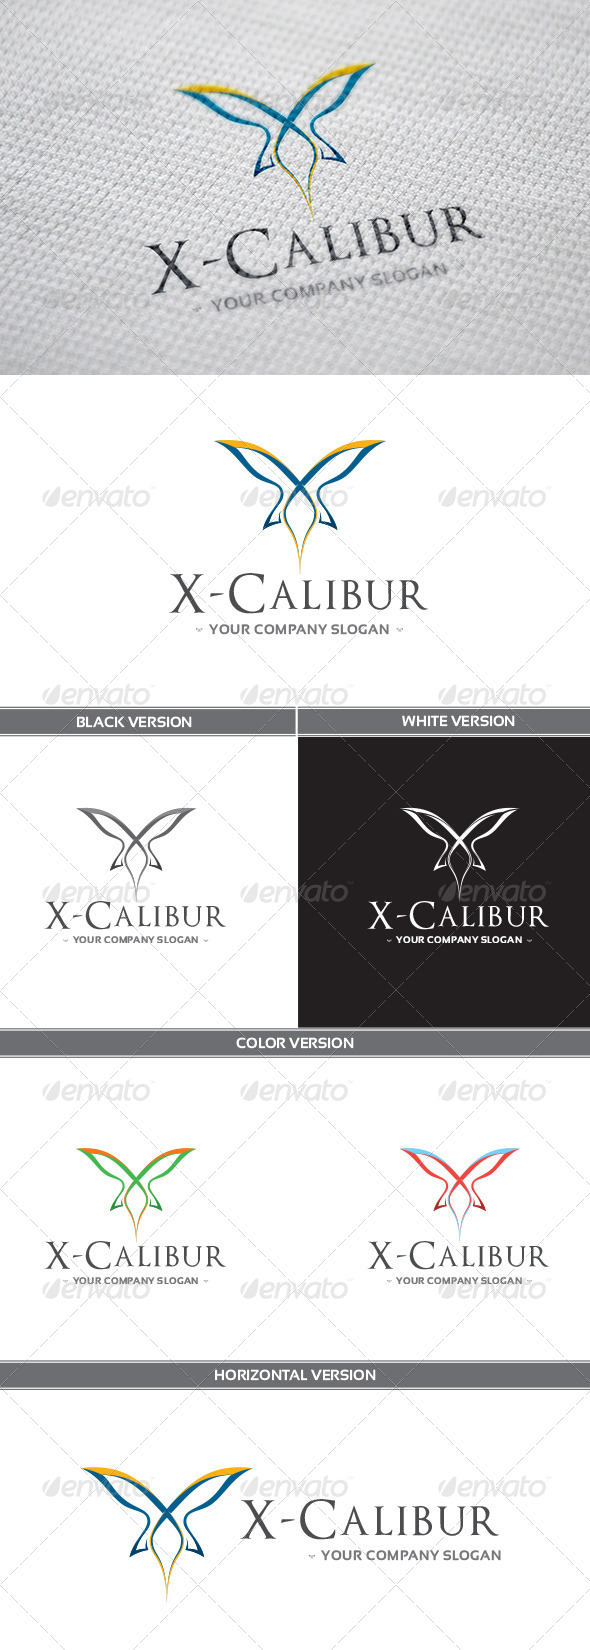 GraphicRiver X-Calibur Logo 8590830